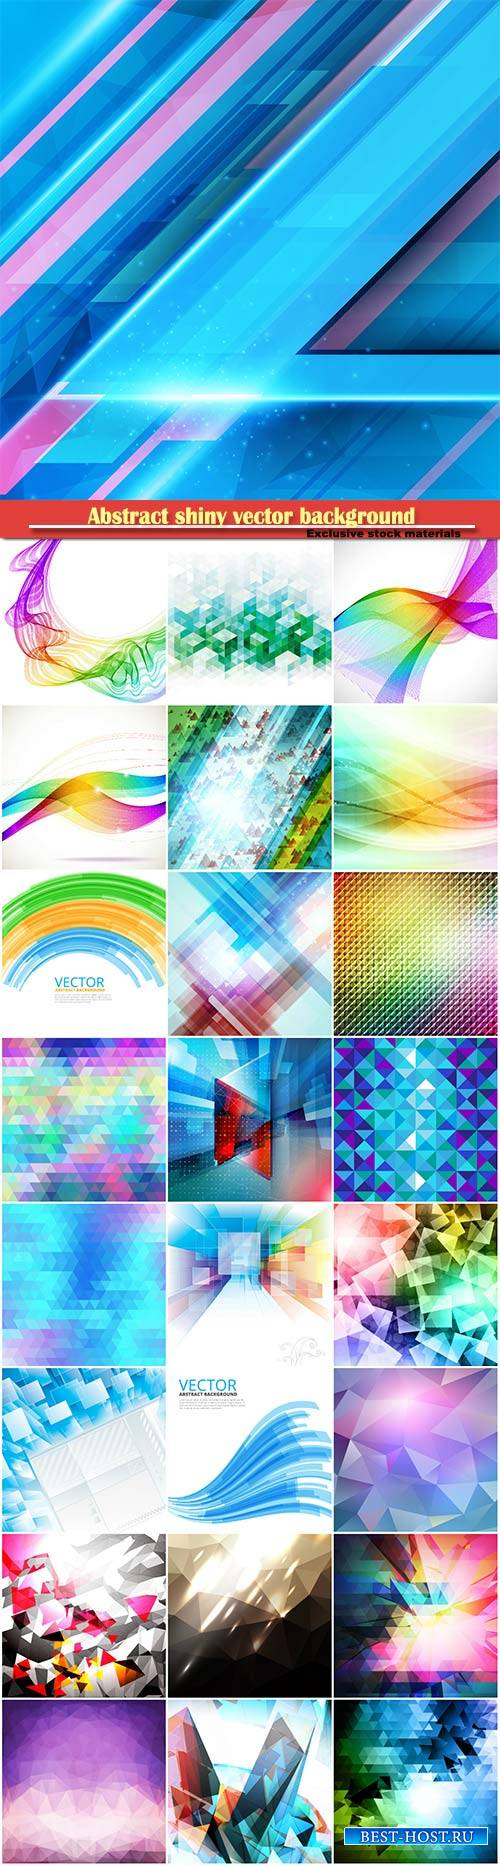 Abstract shiny vector background